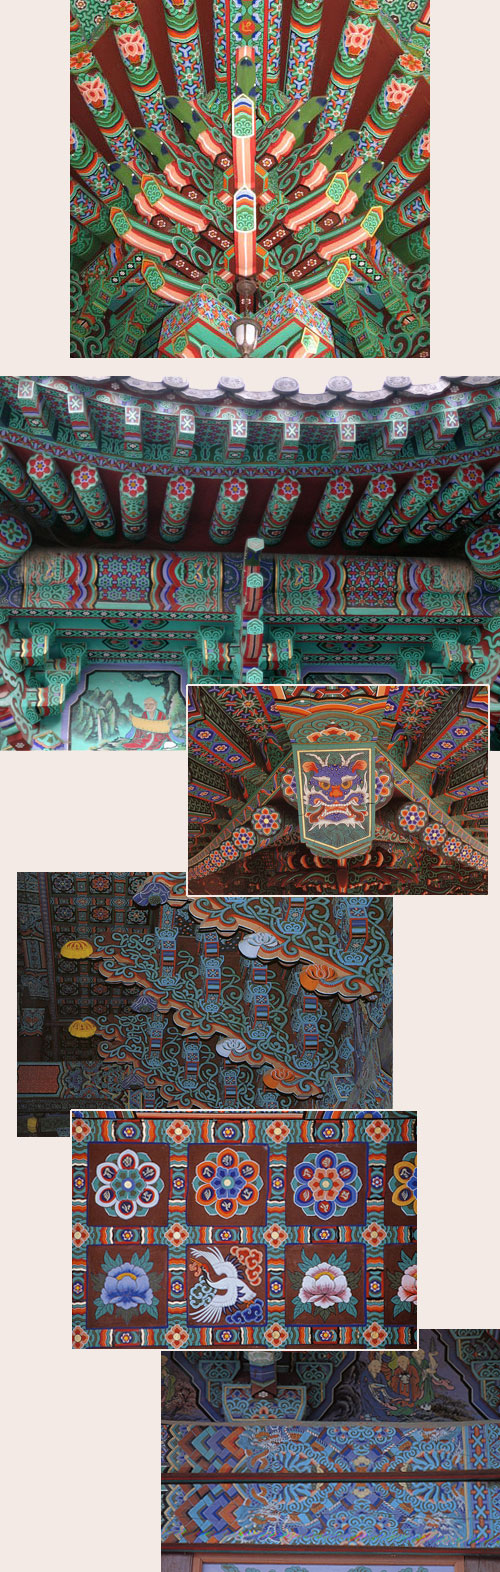 Korean painted temples